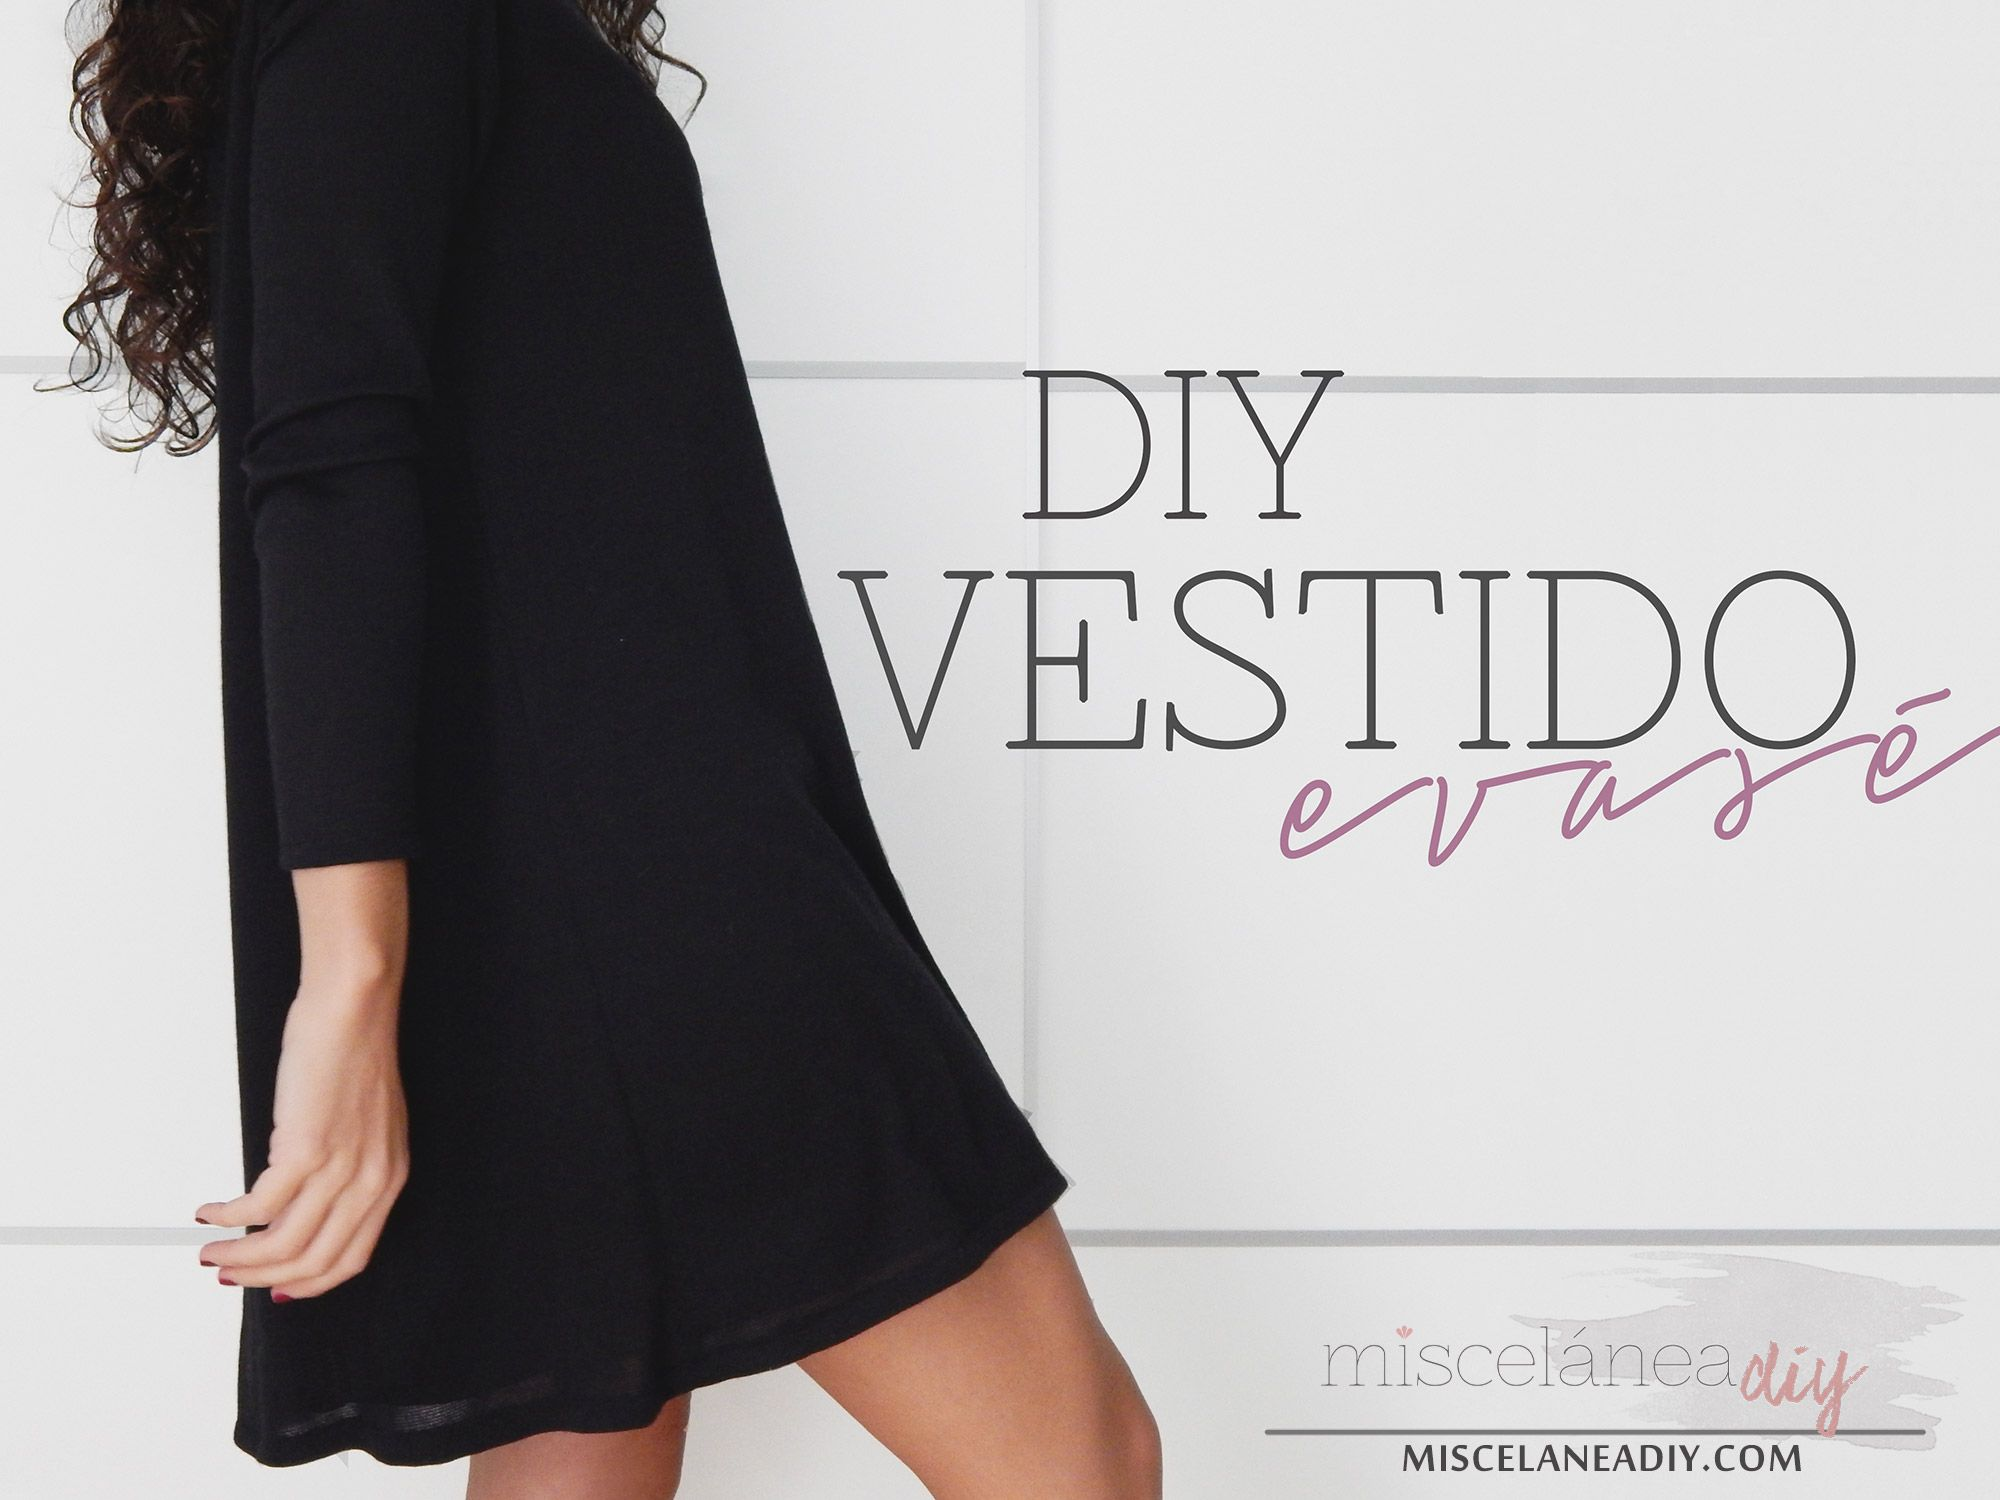 DIY sewing | Vestido con vuelo | Swing Dress | Clothes DIY ...